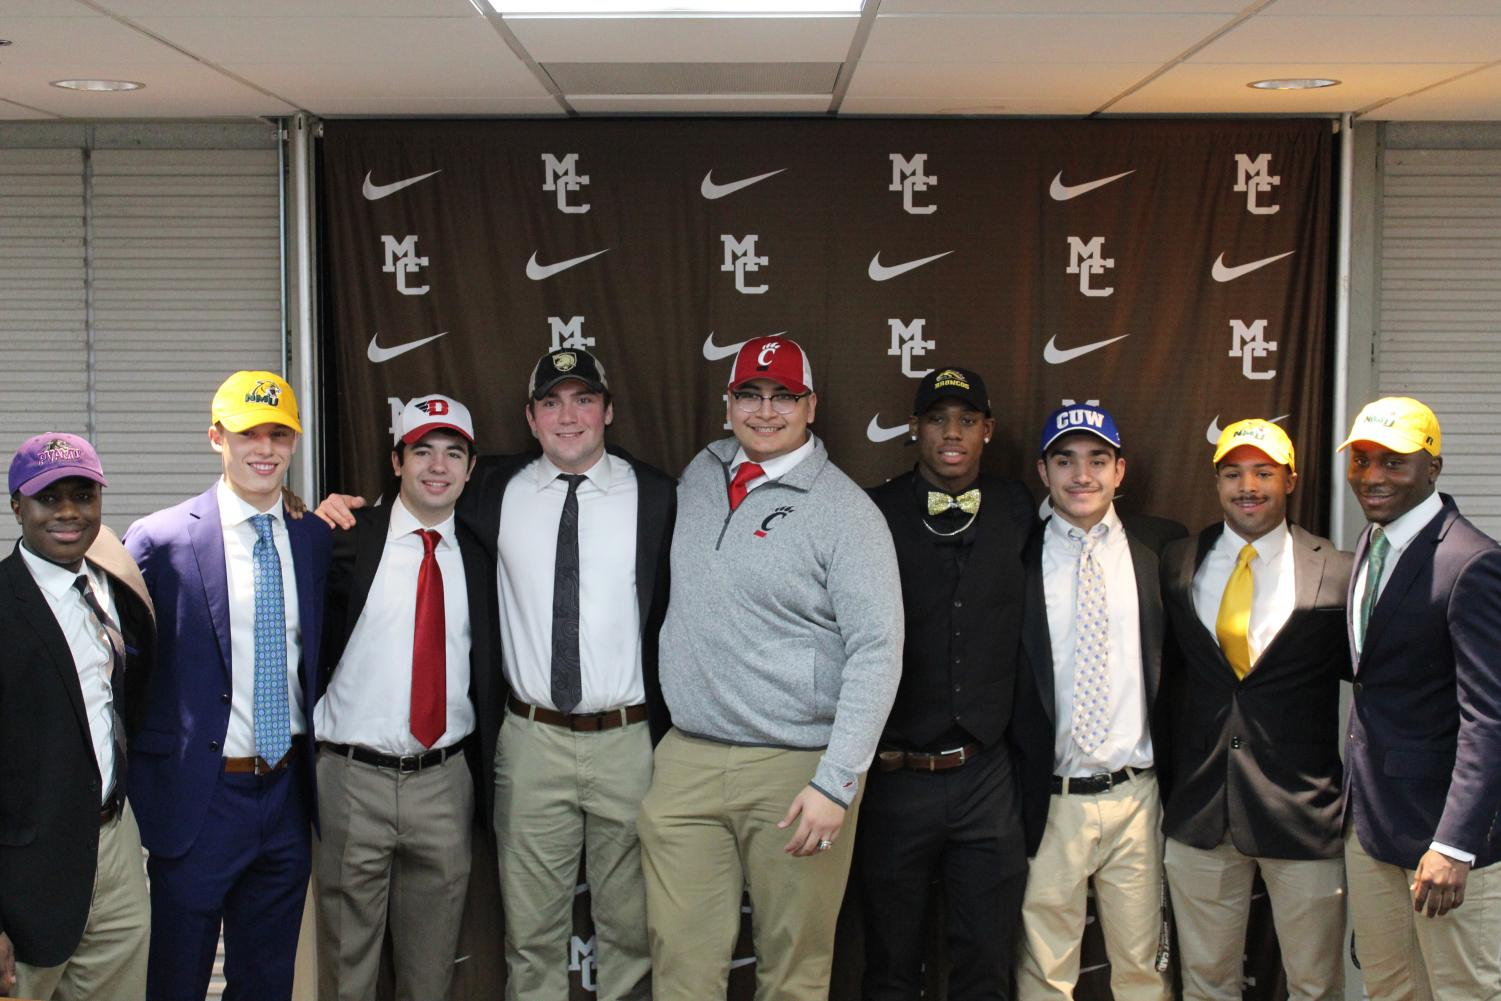 Nine MC seniors signed college letters of intent on February 6.  (left to right: Abdel Raoul, Radomir Premovic, Matthew Lenti, Patrick Szczesniak, Marcelo Mendiola, Kyle Davis, David Lopez, Eddie McGee, and Davion Brooks